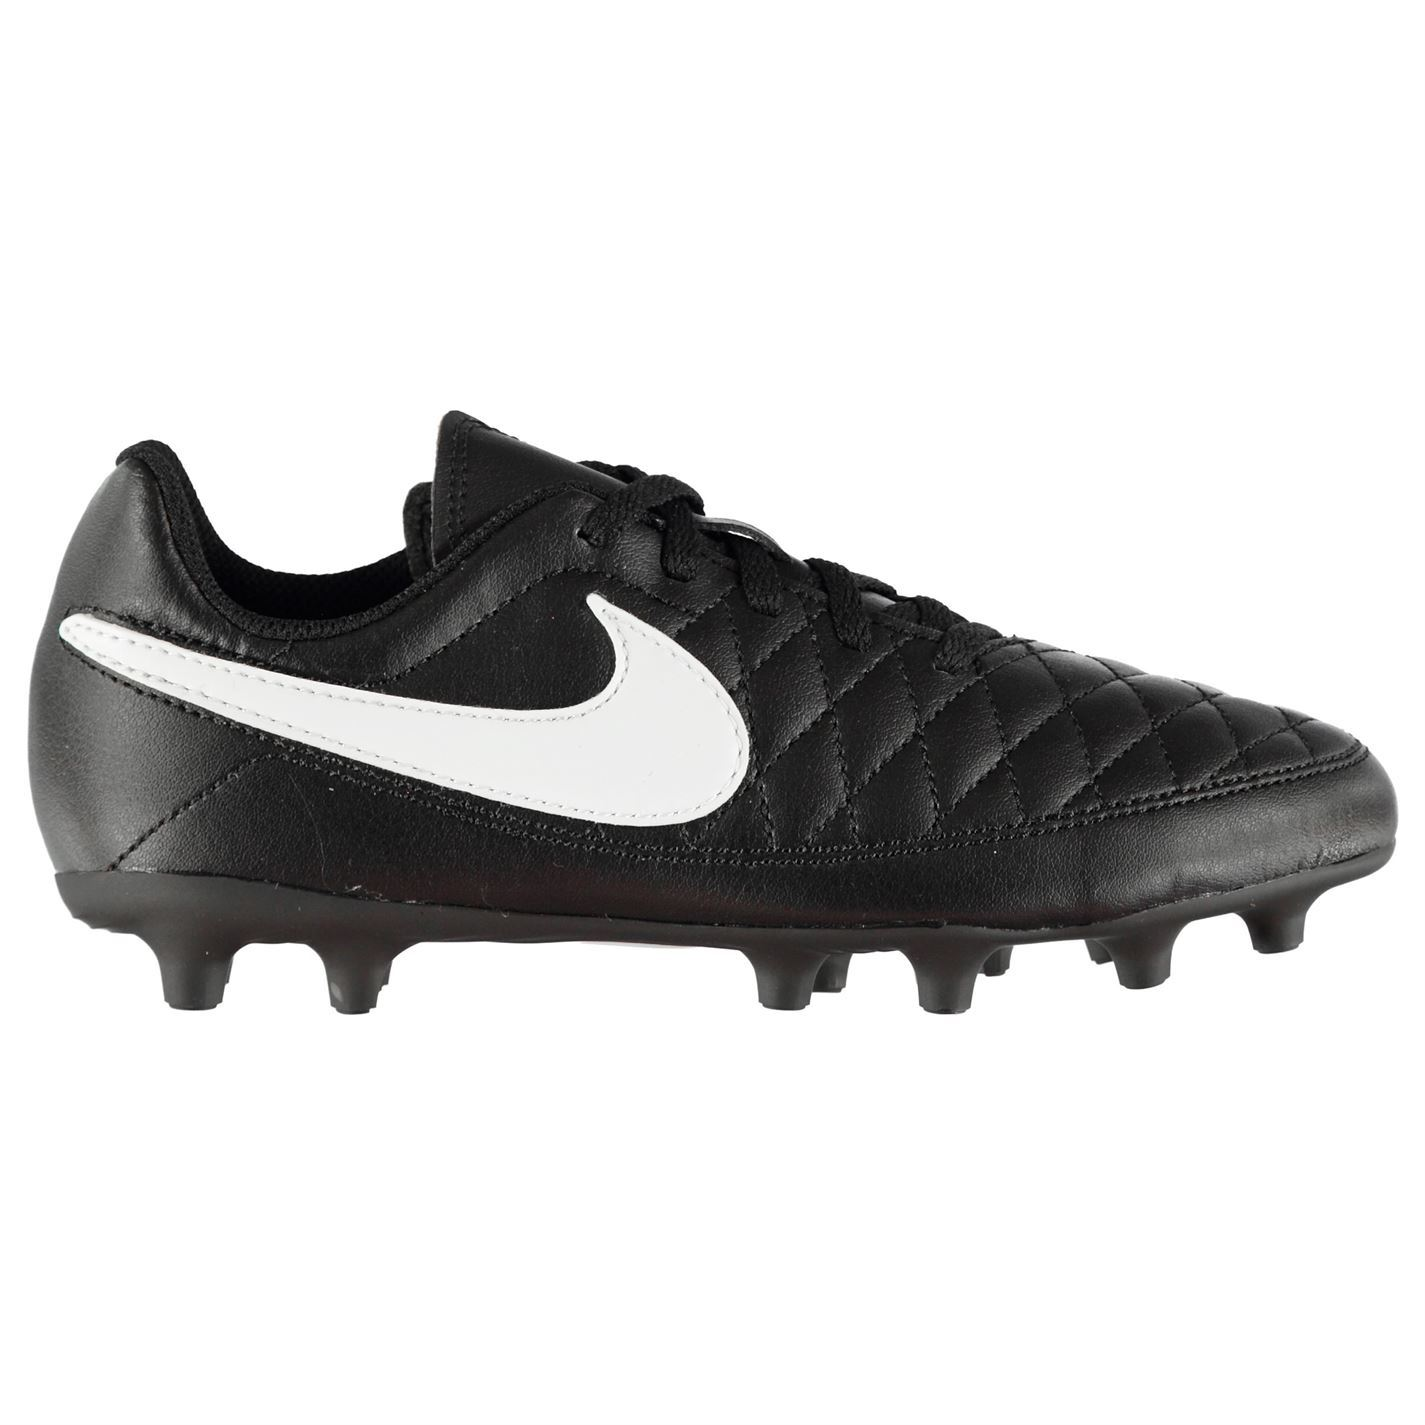 miniature 12 - Nike-majestry-FG-Firm-Ground-Chaussures-De-Football-Enfants-Football-Chaussures-Crampons